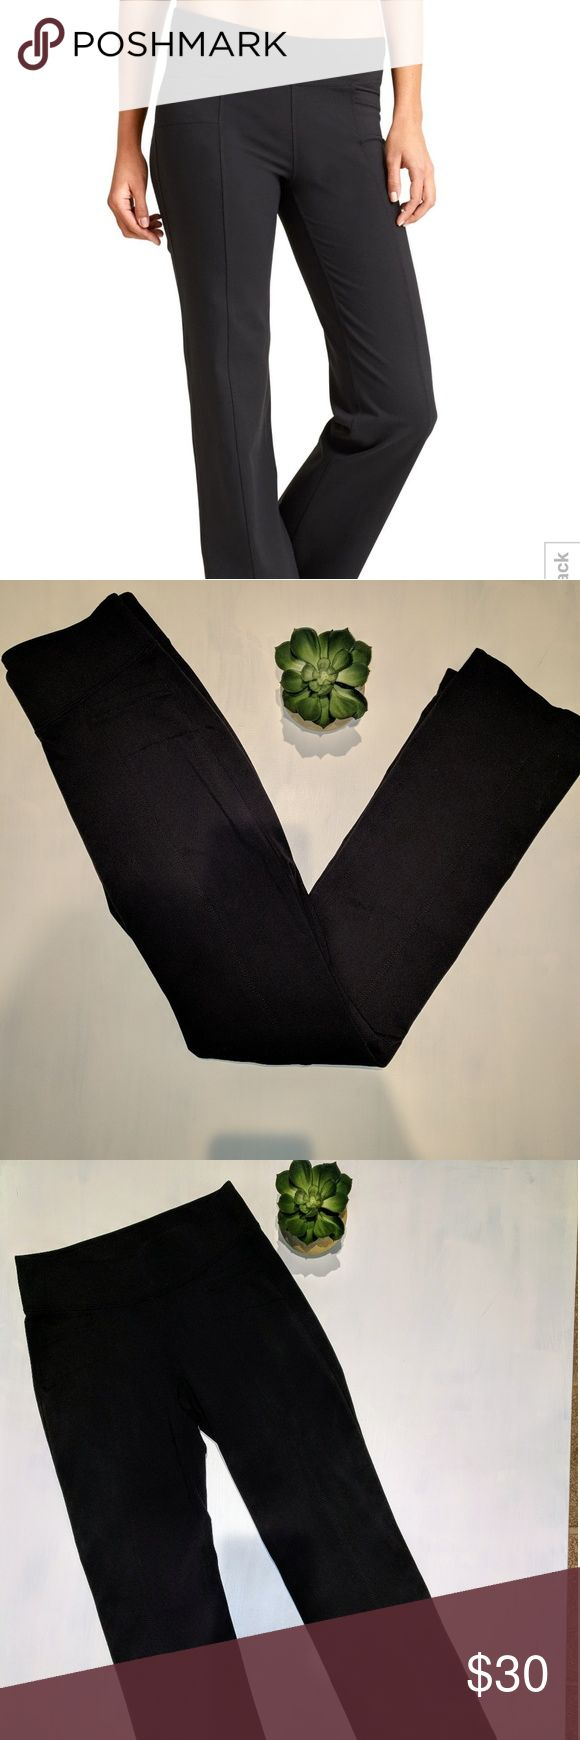 """Athleta Metro Classic Pant XS Perfect condition, no signs of damage.   Waist =25"""", Inseam = 30.5"""".  Online description: The yoga-pant-comfy METRO style made to give your jeans a day off with handy pockets, sweet seam lines and super stretchy fabric that supports your love of adventure. INSPIRED FOR: adventure,To Fro, workout, studio. Ultra-comfortable wide waistband. Rivals the ease of your favorite-fitting boyfriend jeans FIT TO FLATTER. Trouser-inspired seam lines are in all the right…"""